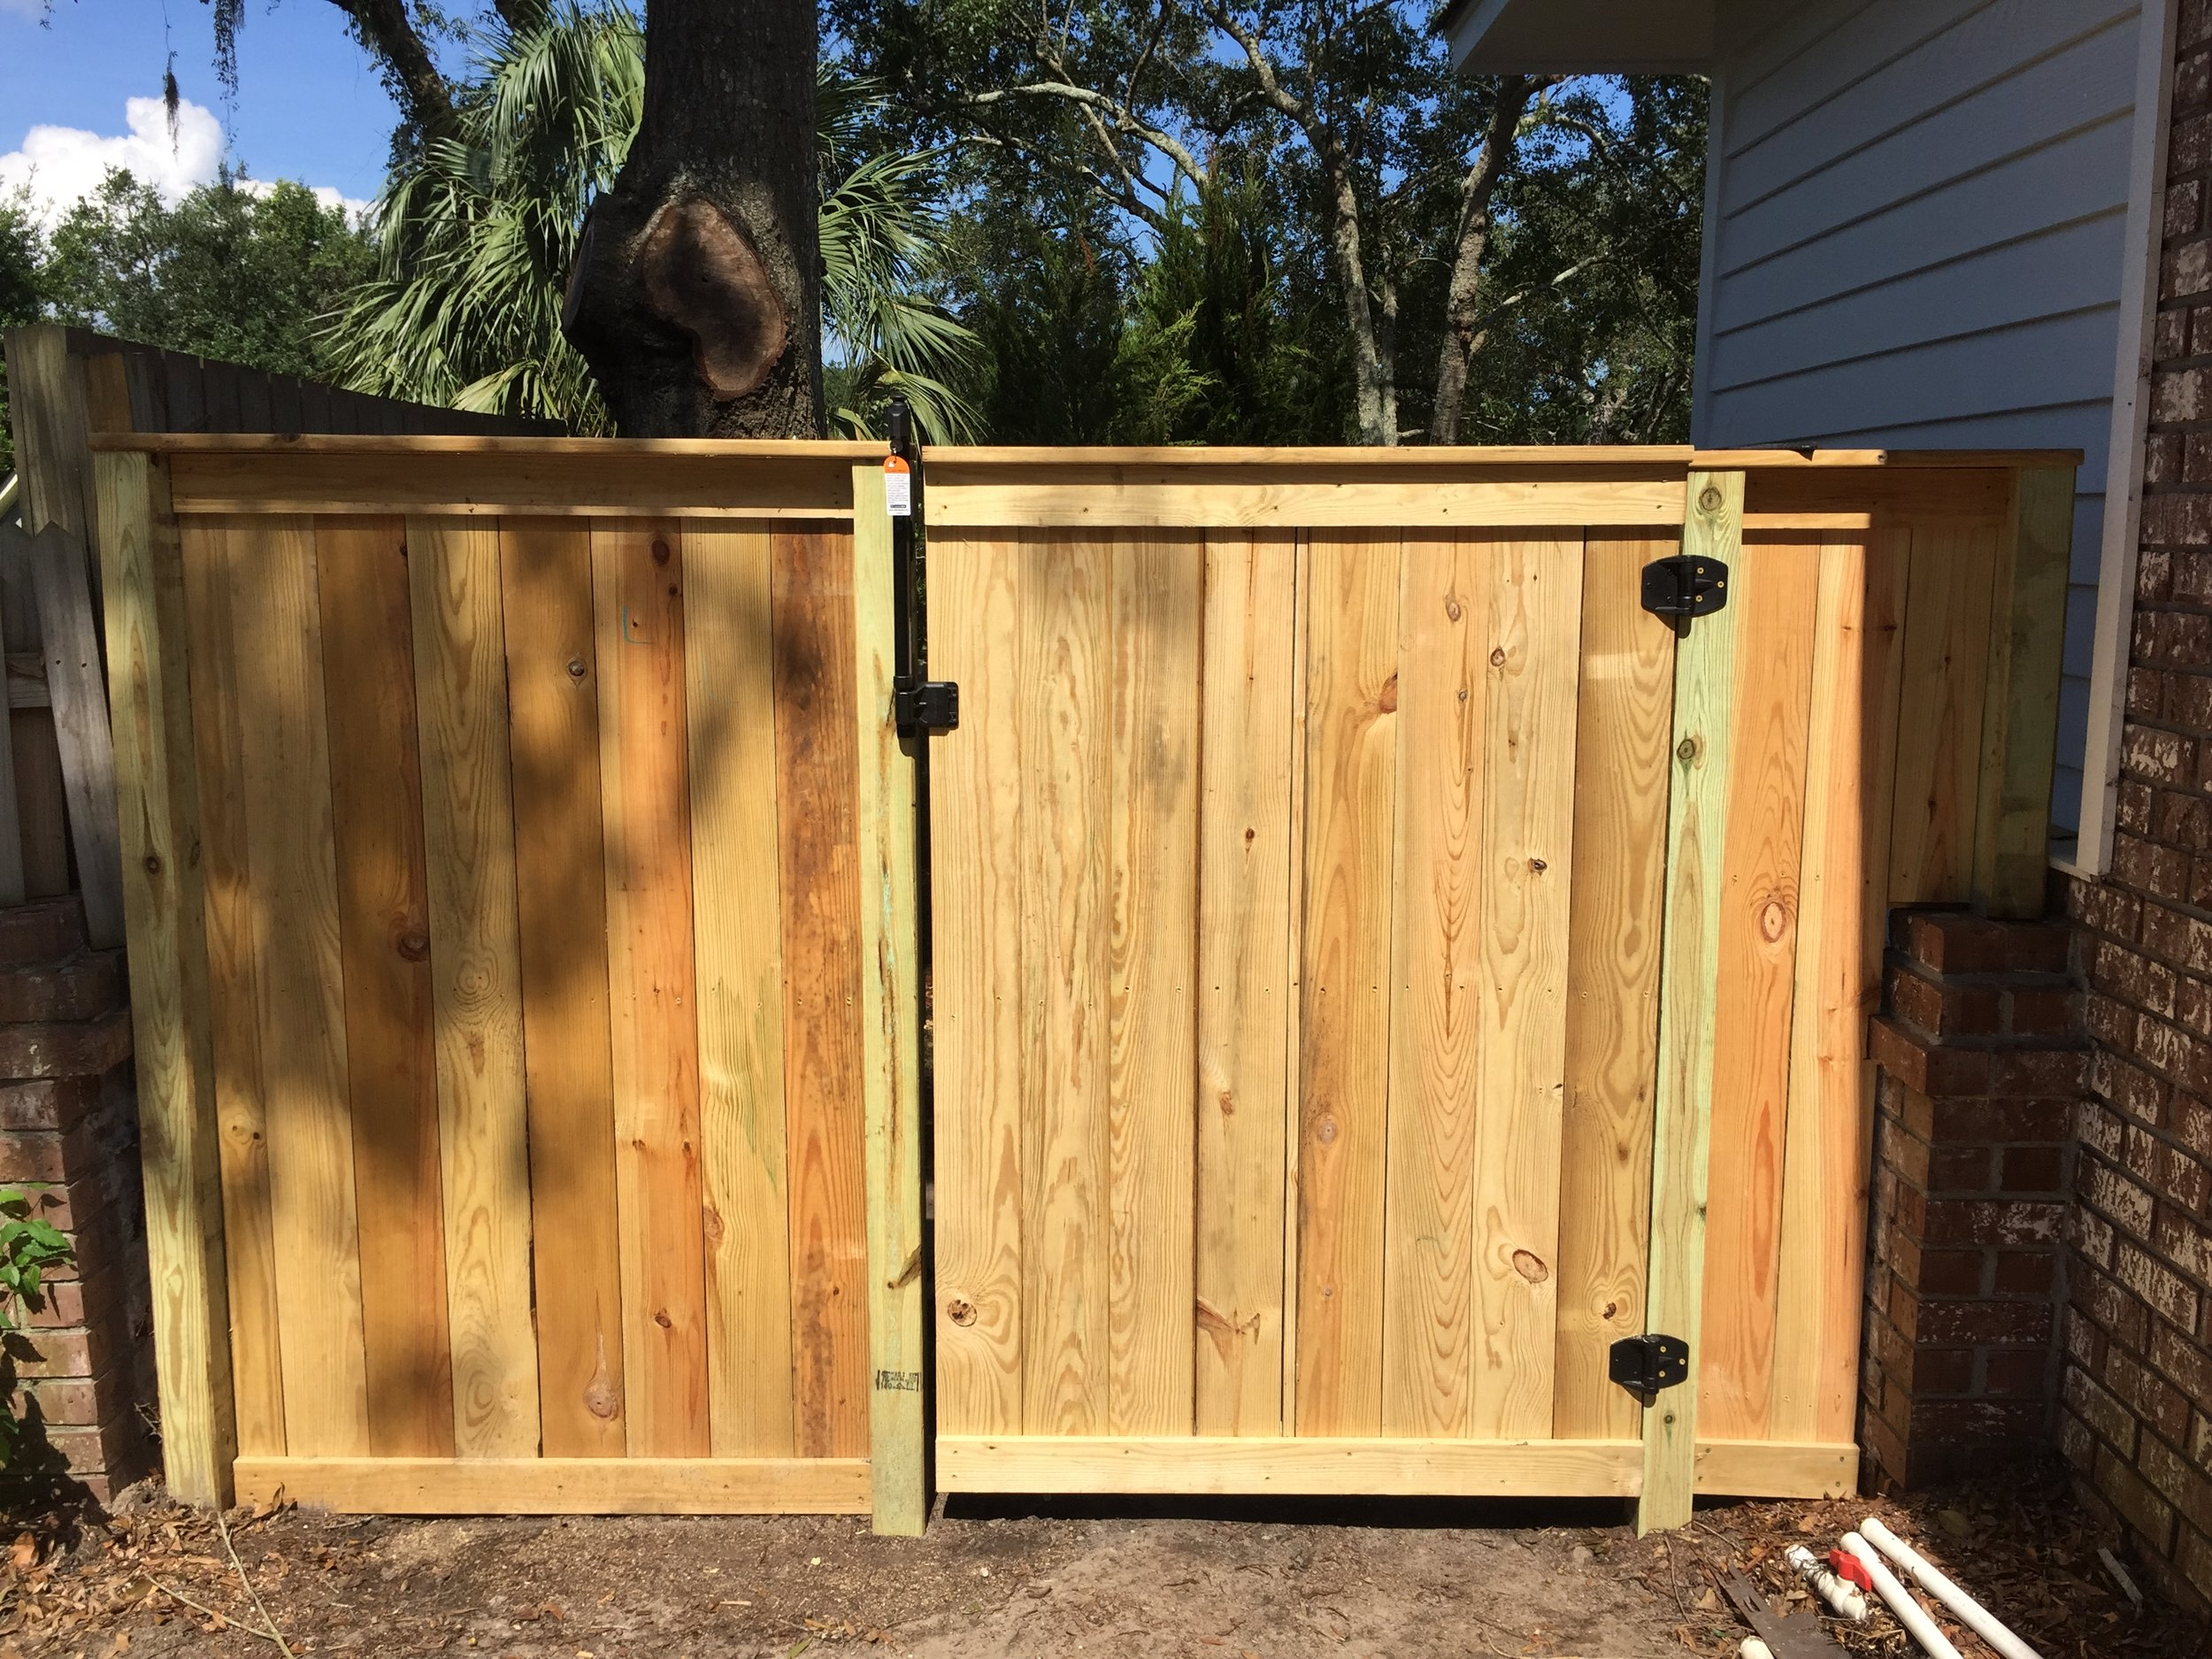 6' Privacy Fence with Gate